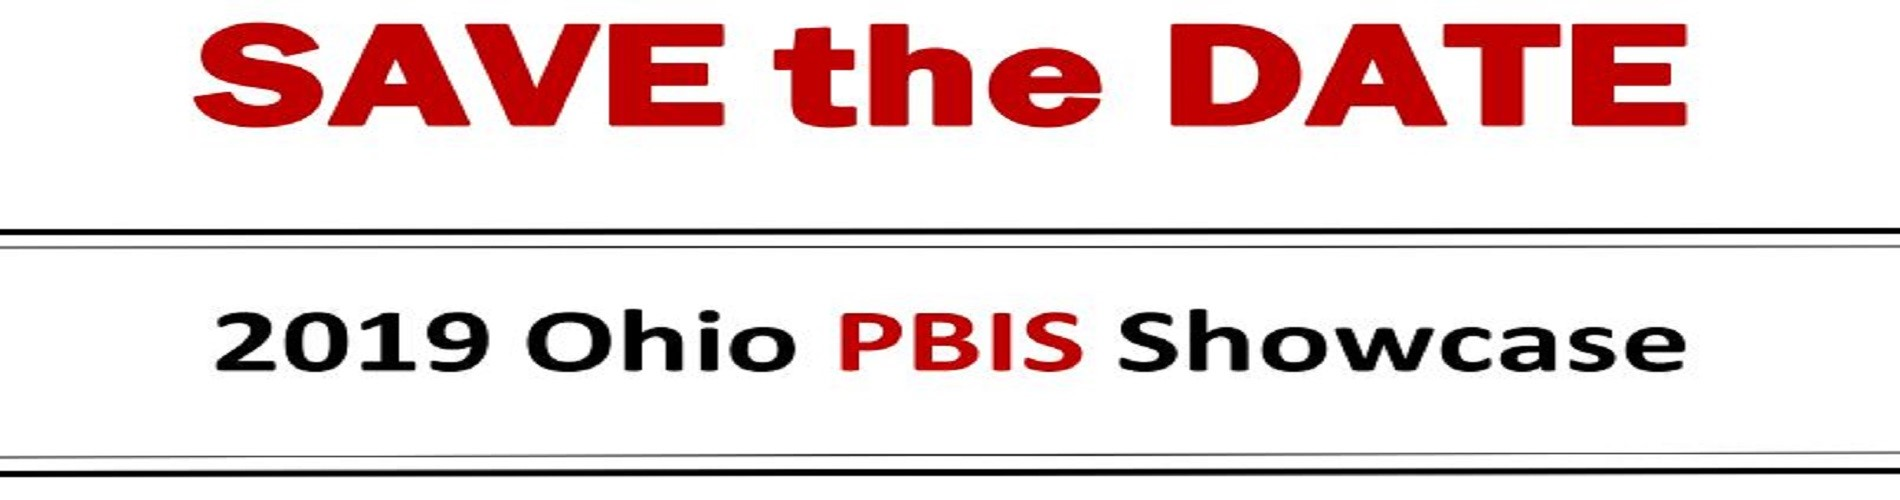 2019 Ohio PBIS Showcase--December 11, 2019